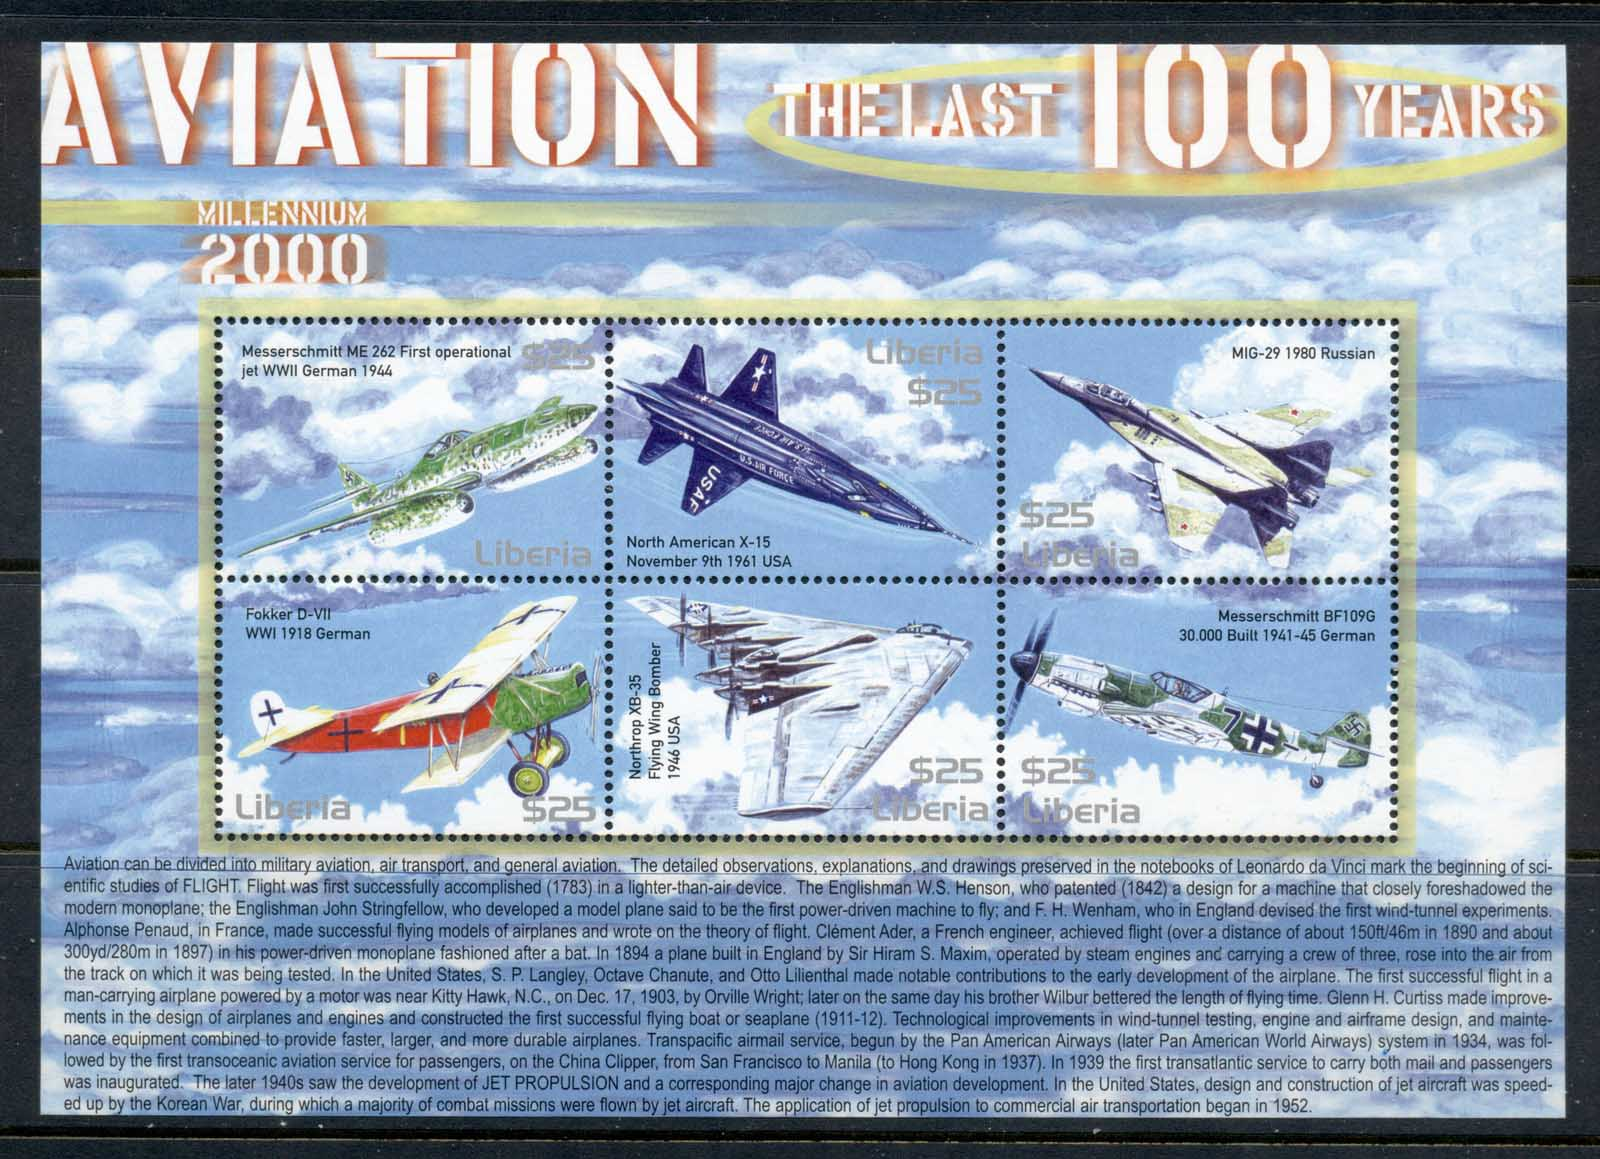 Liberia 2000 Aviation the Last 100 years sheetlet MUH